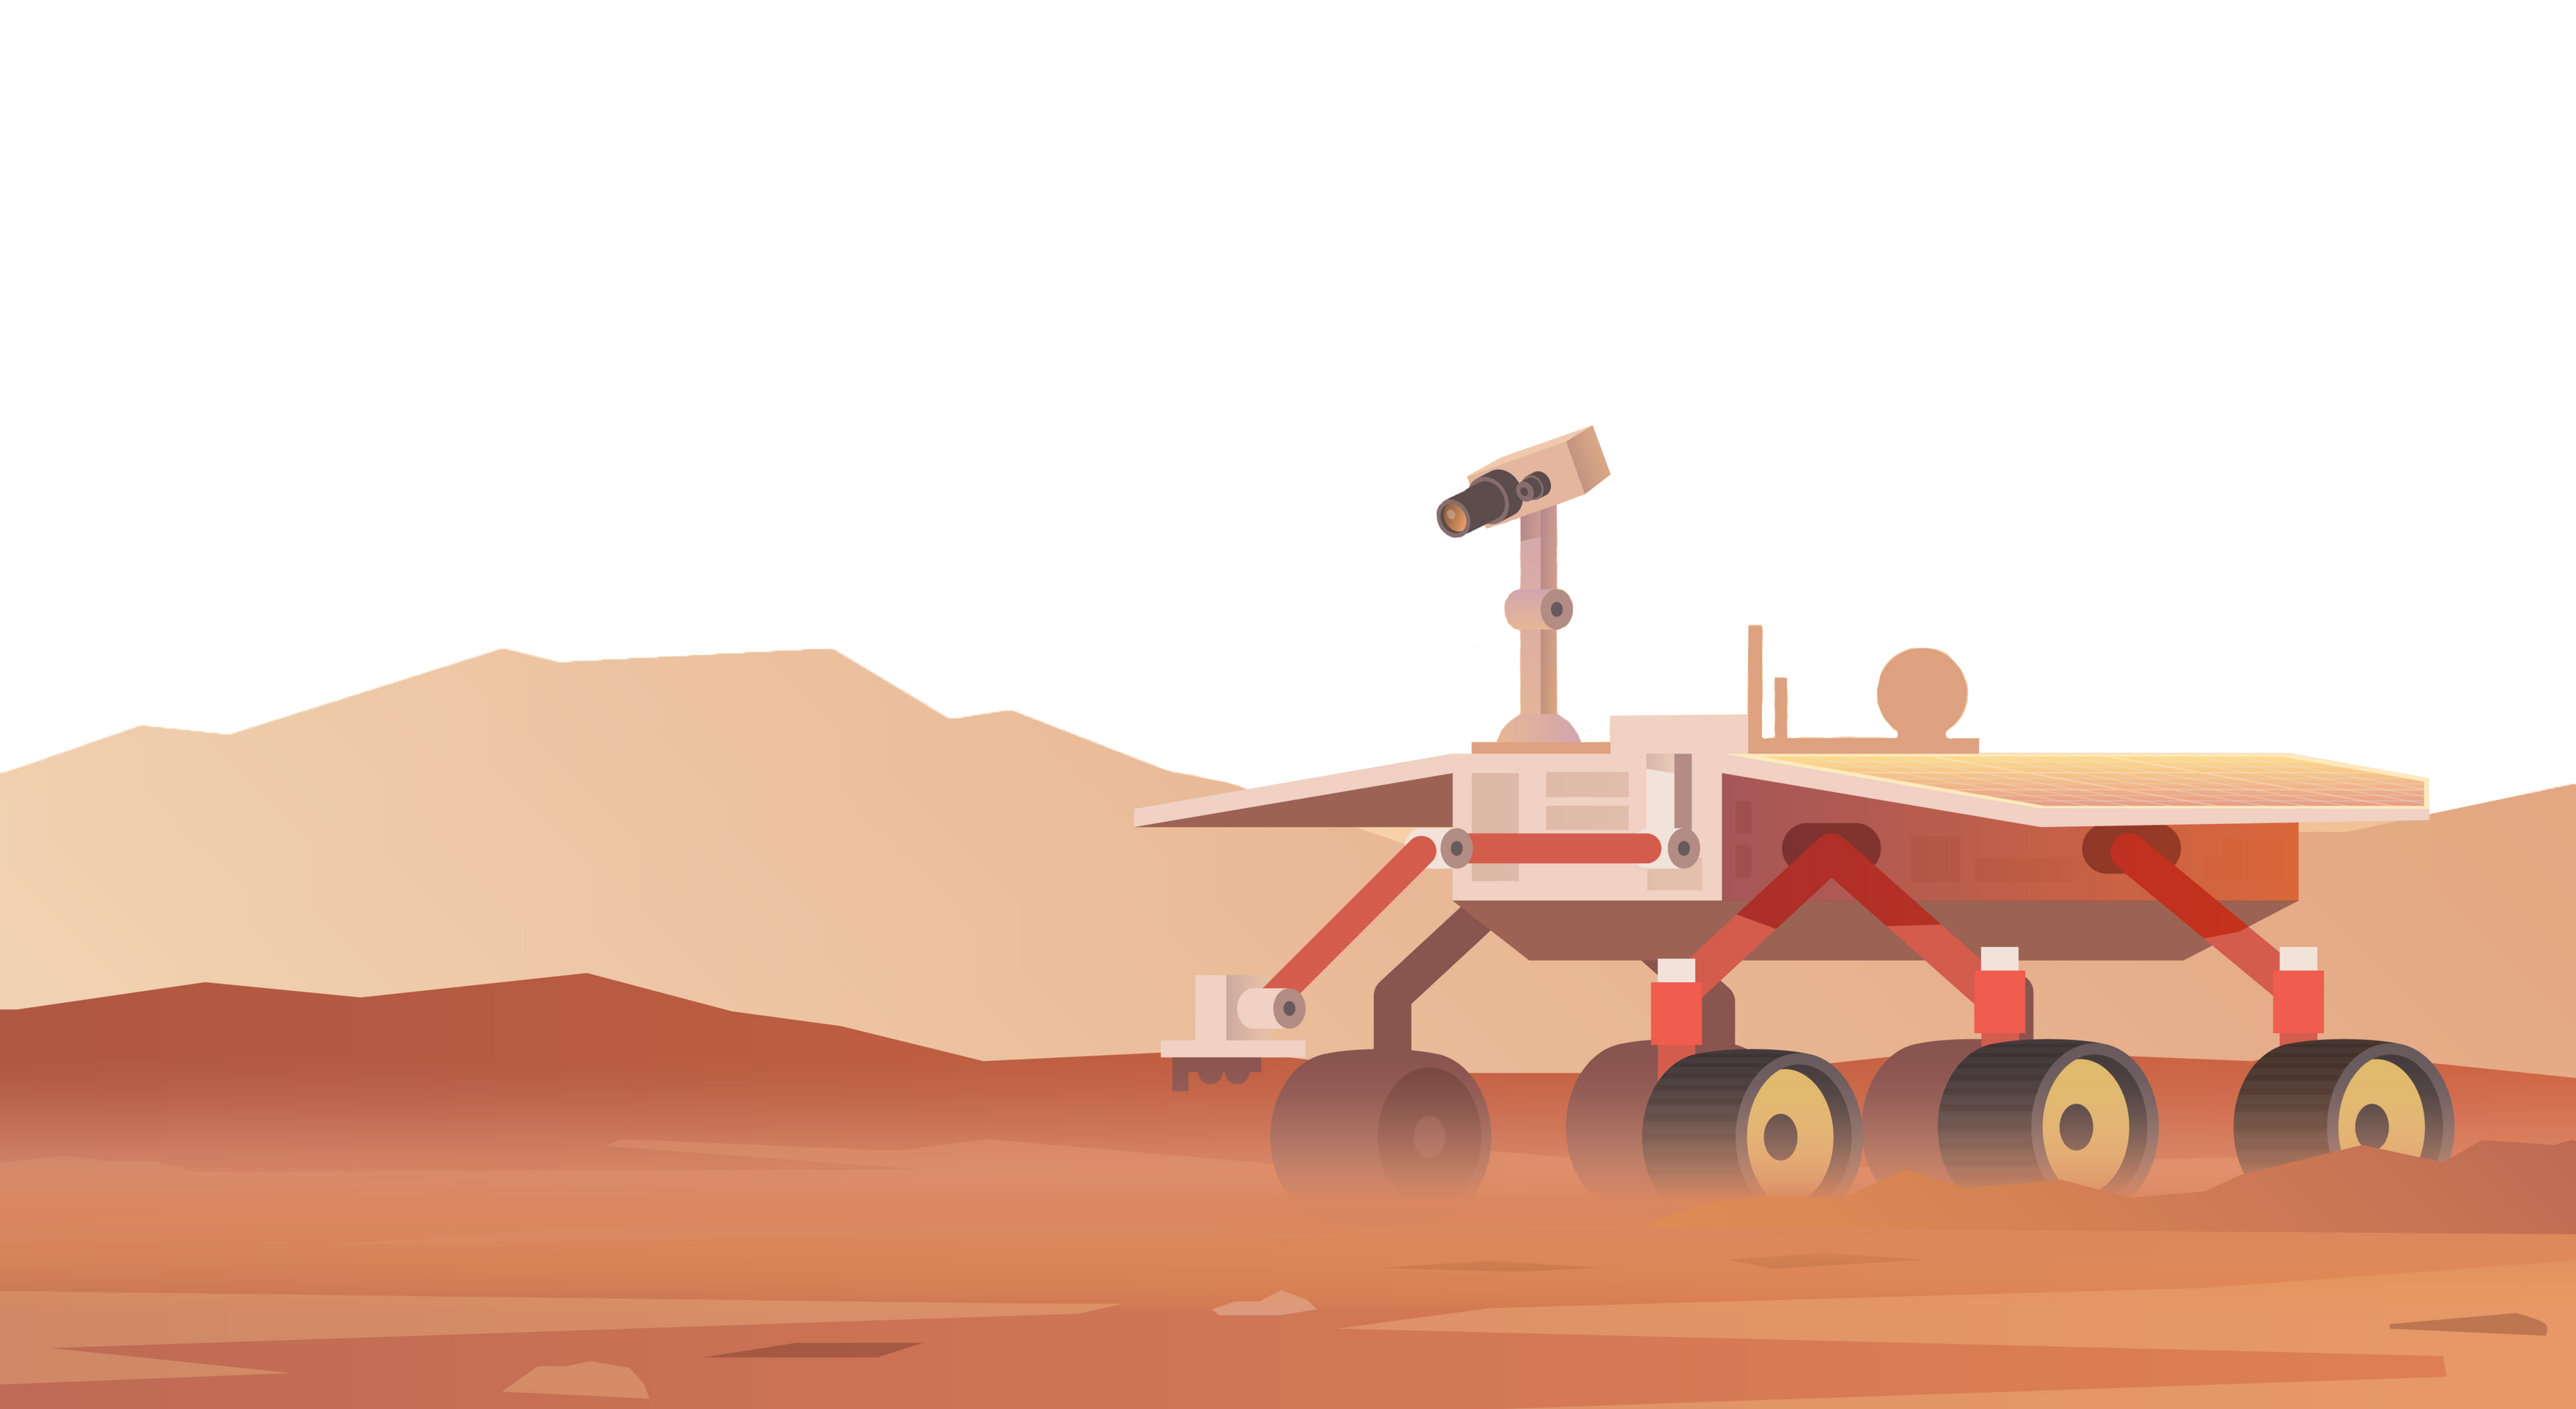 rover on planet